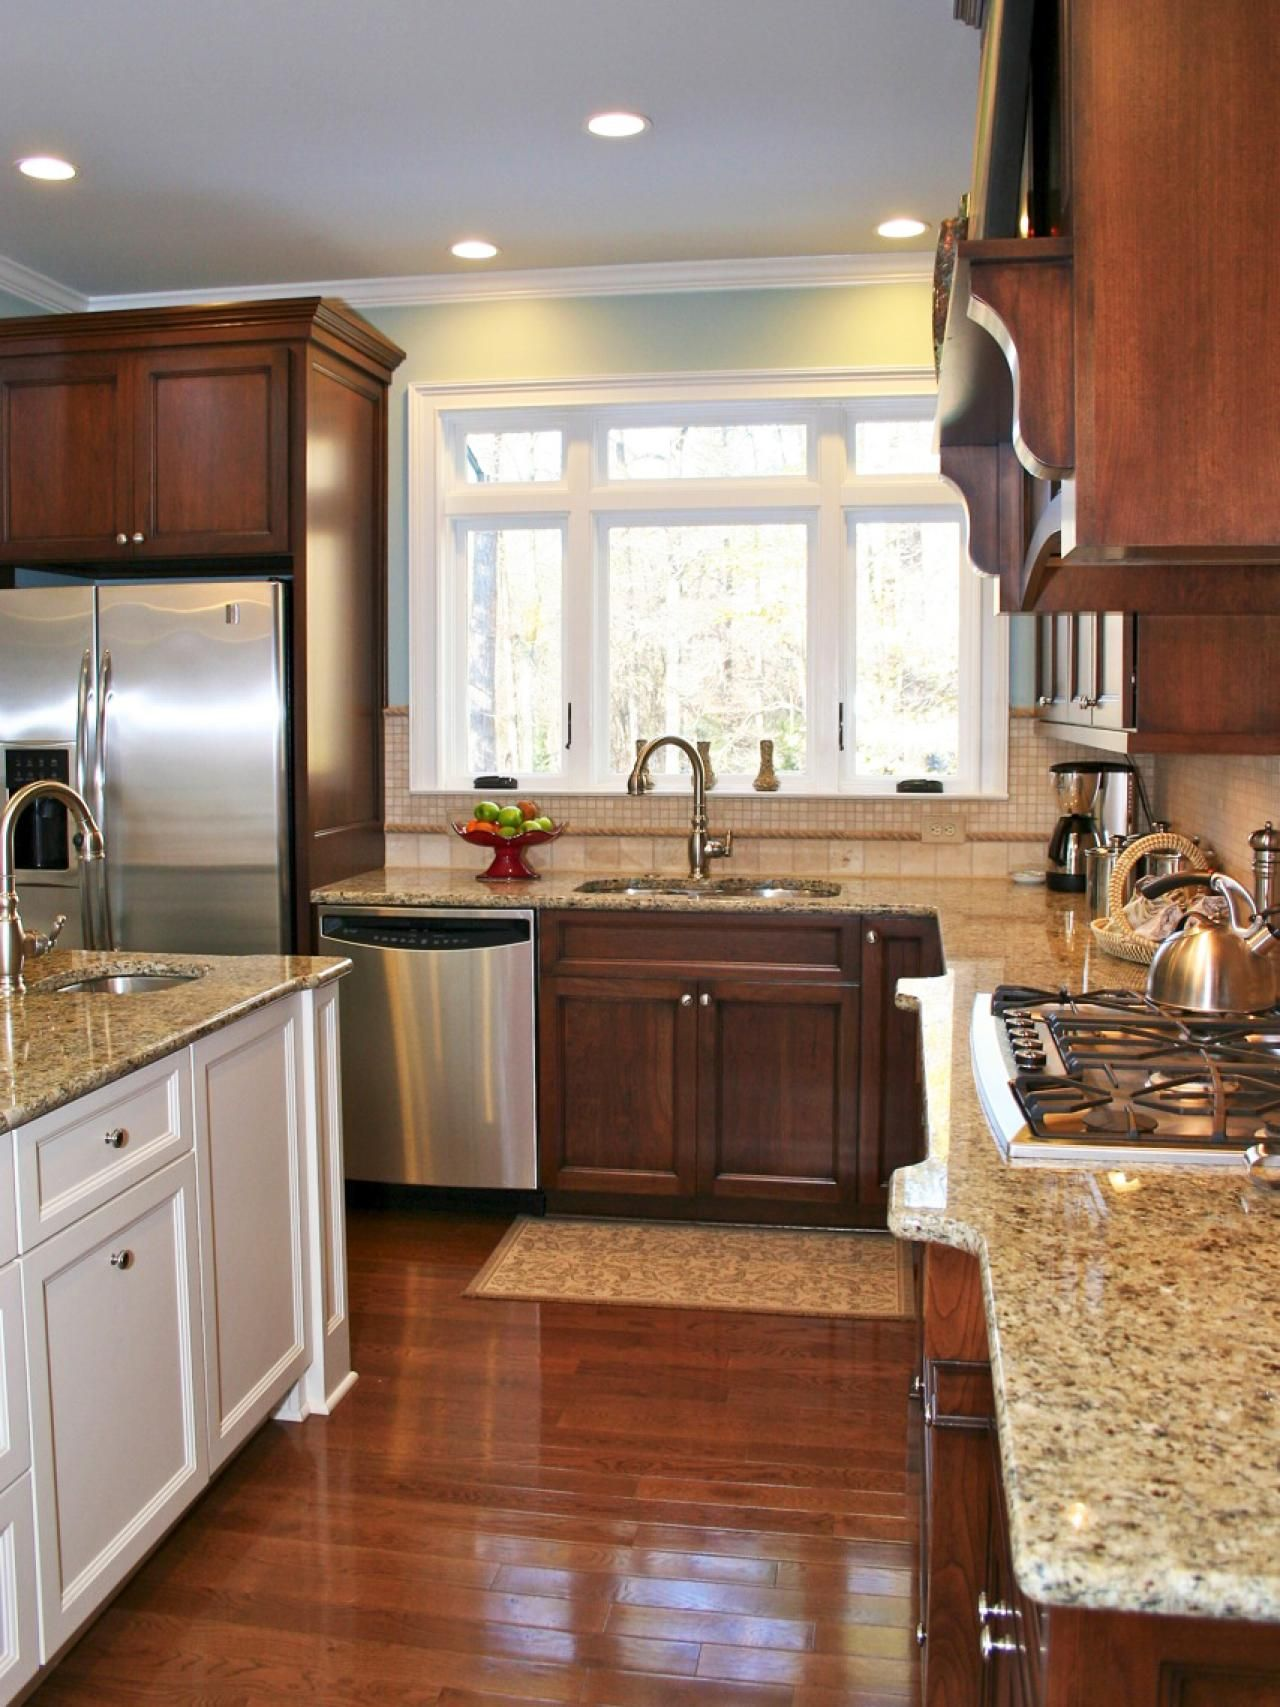 This kitchen's granite countertops give the traditional